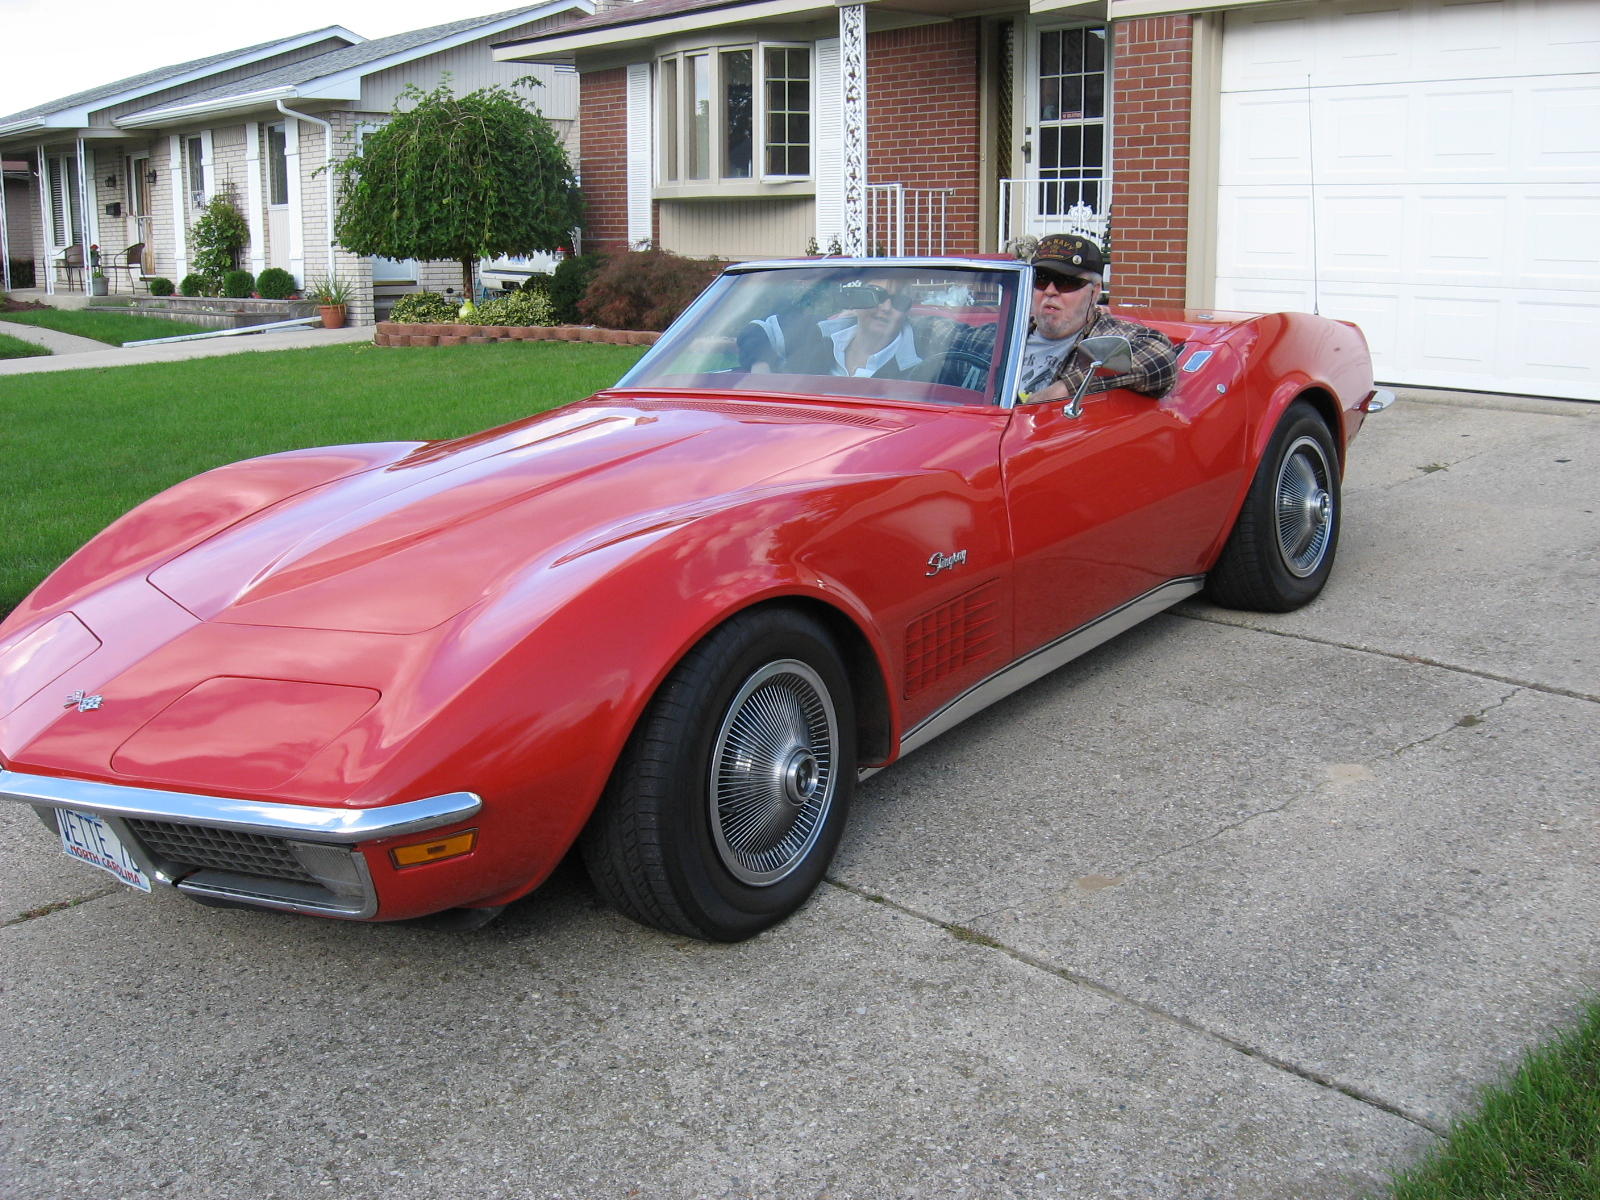 north texas bikers v 1970 corvette stingray for sale 10 9 2011. Cars Review. Best American Auto & Cars Review